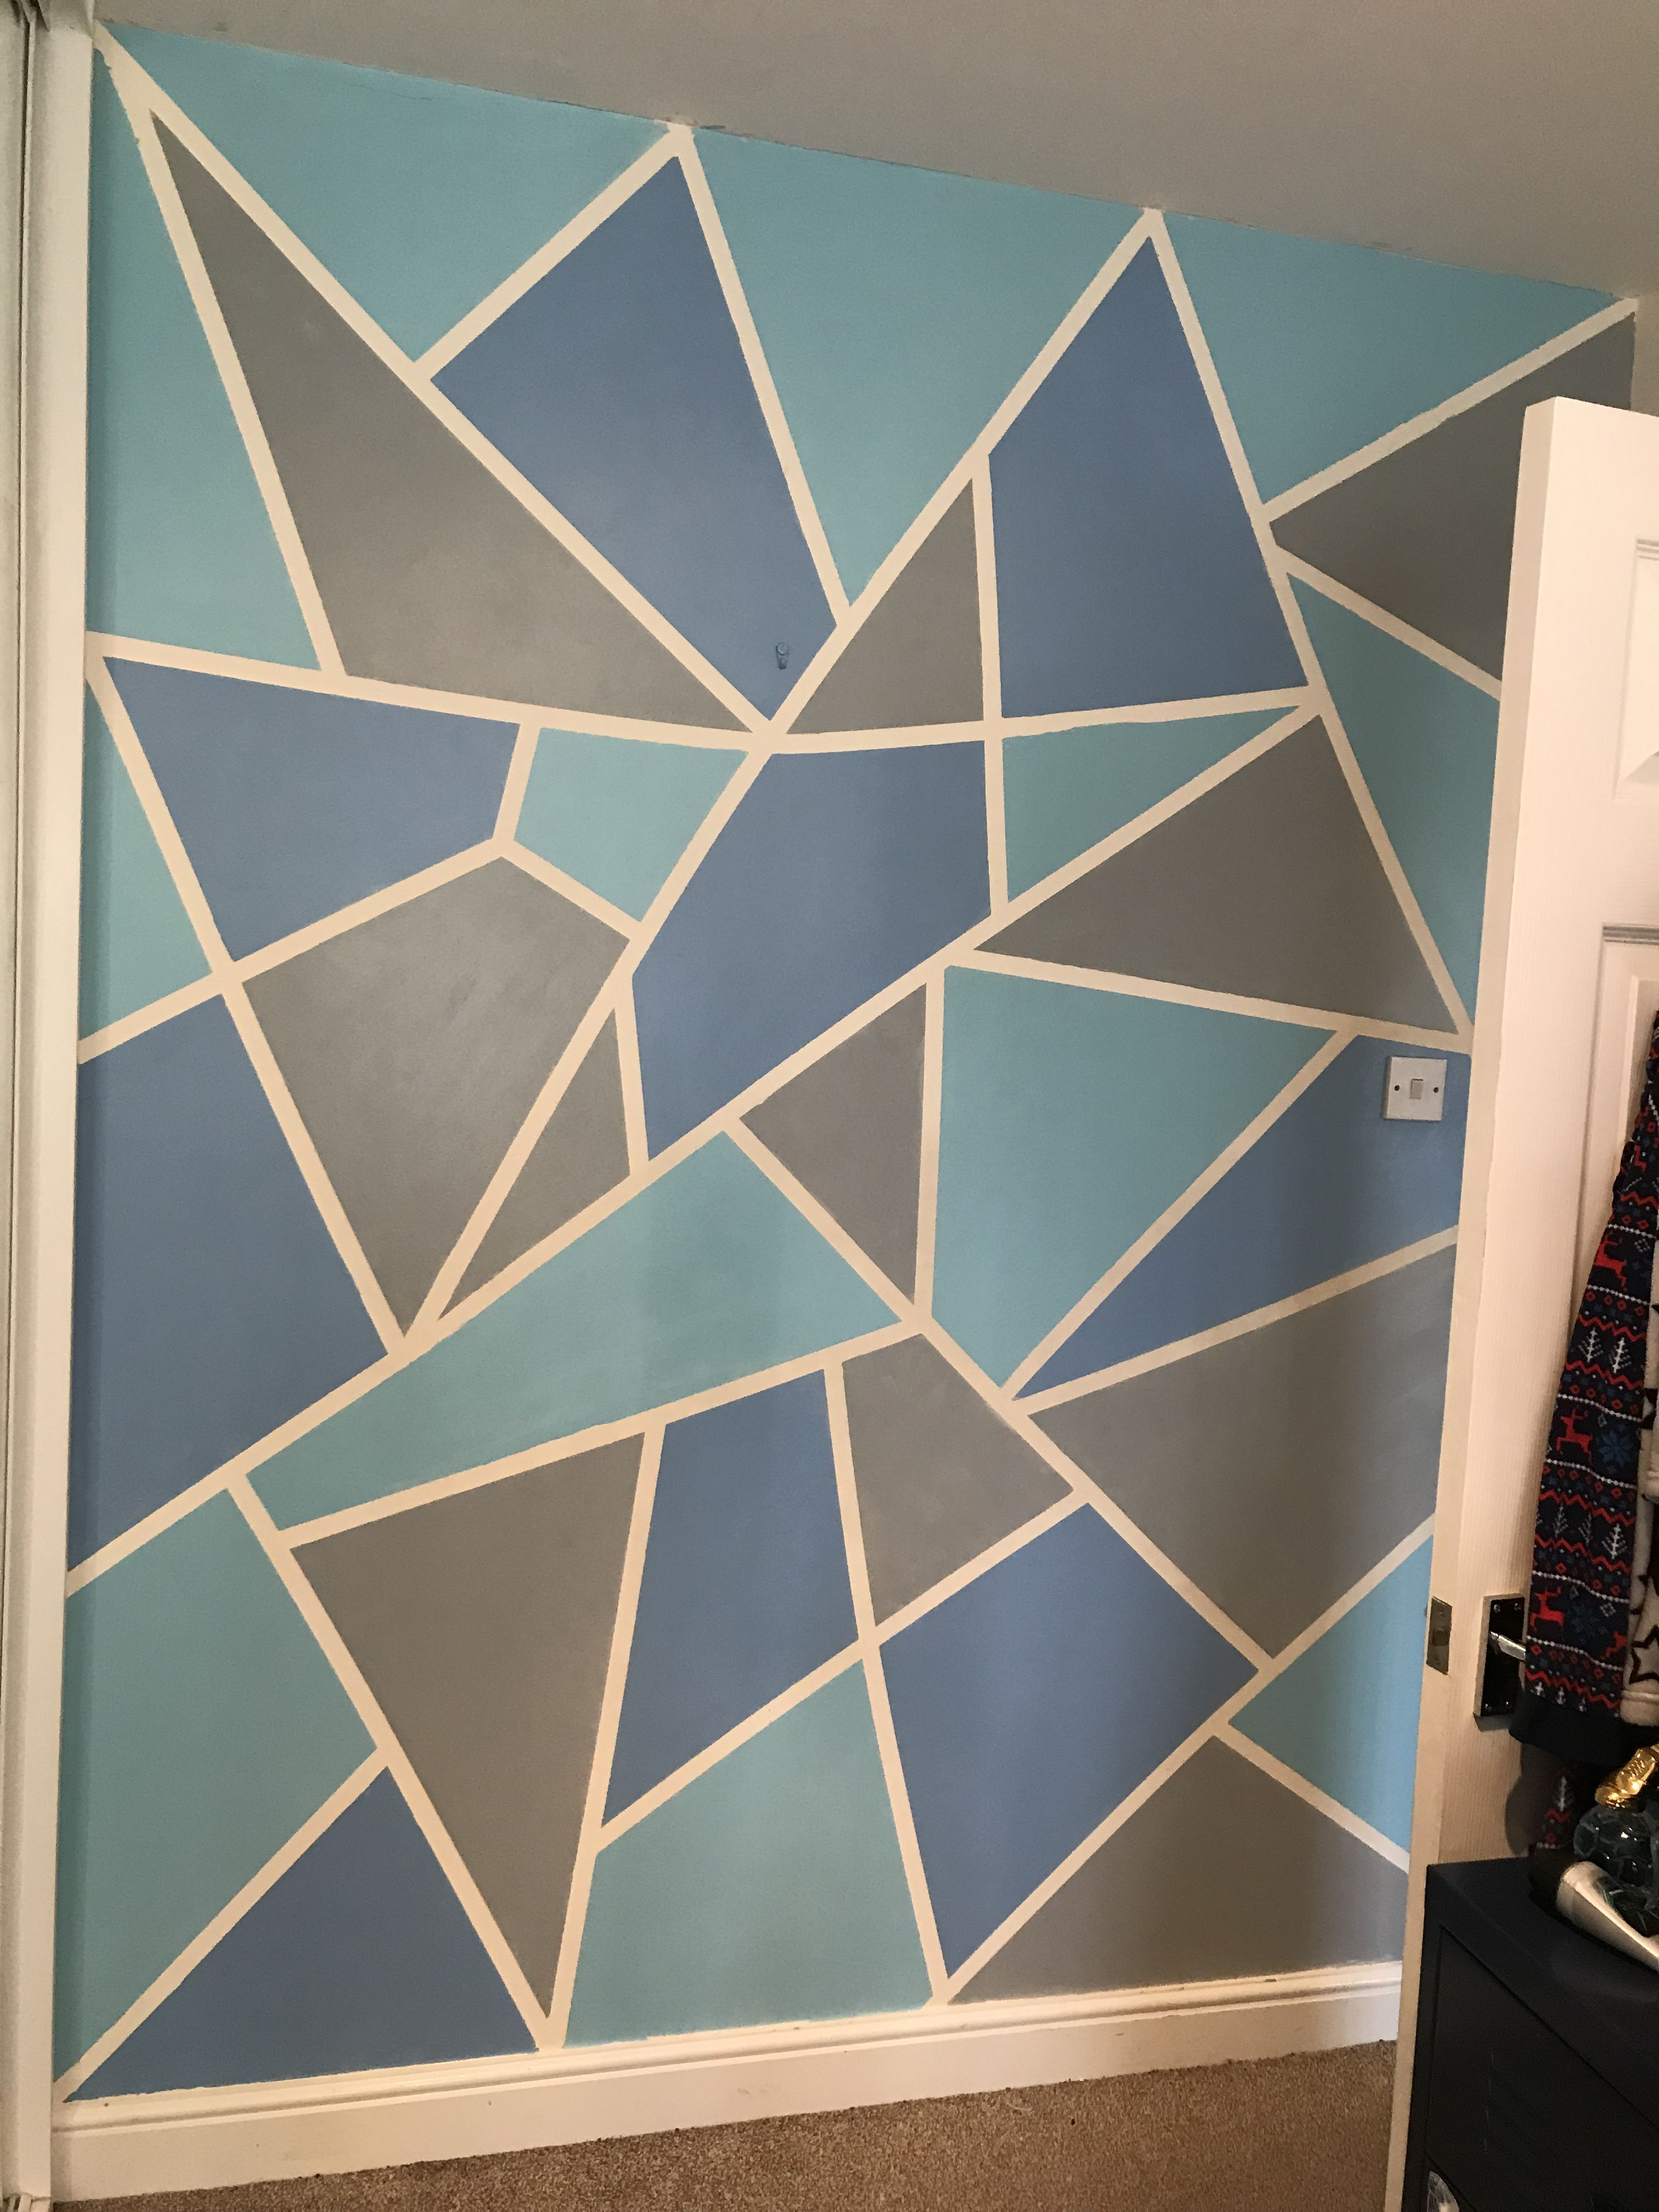 Easy Painting Idea To Glam Up A Plain Wall With Three Tins Of Paint And Some Masking Tape Bedroom Wall Paint Interior Design Girls Bedroom Bedroom Wall Designs